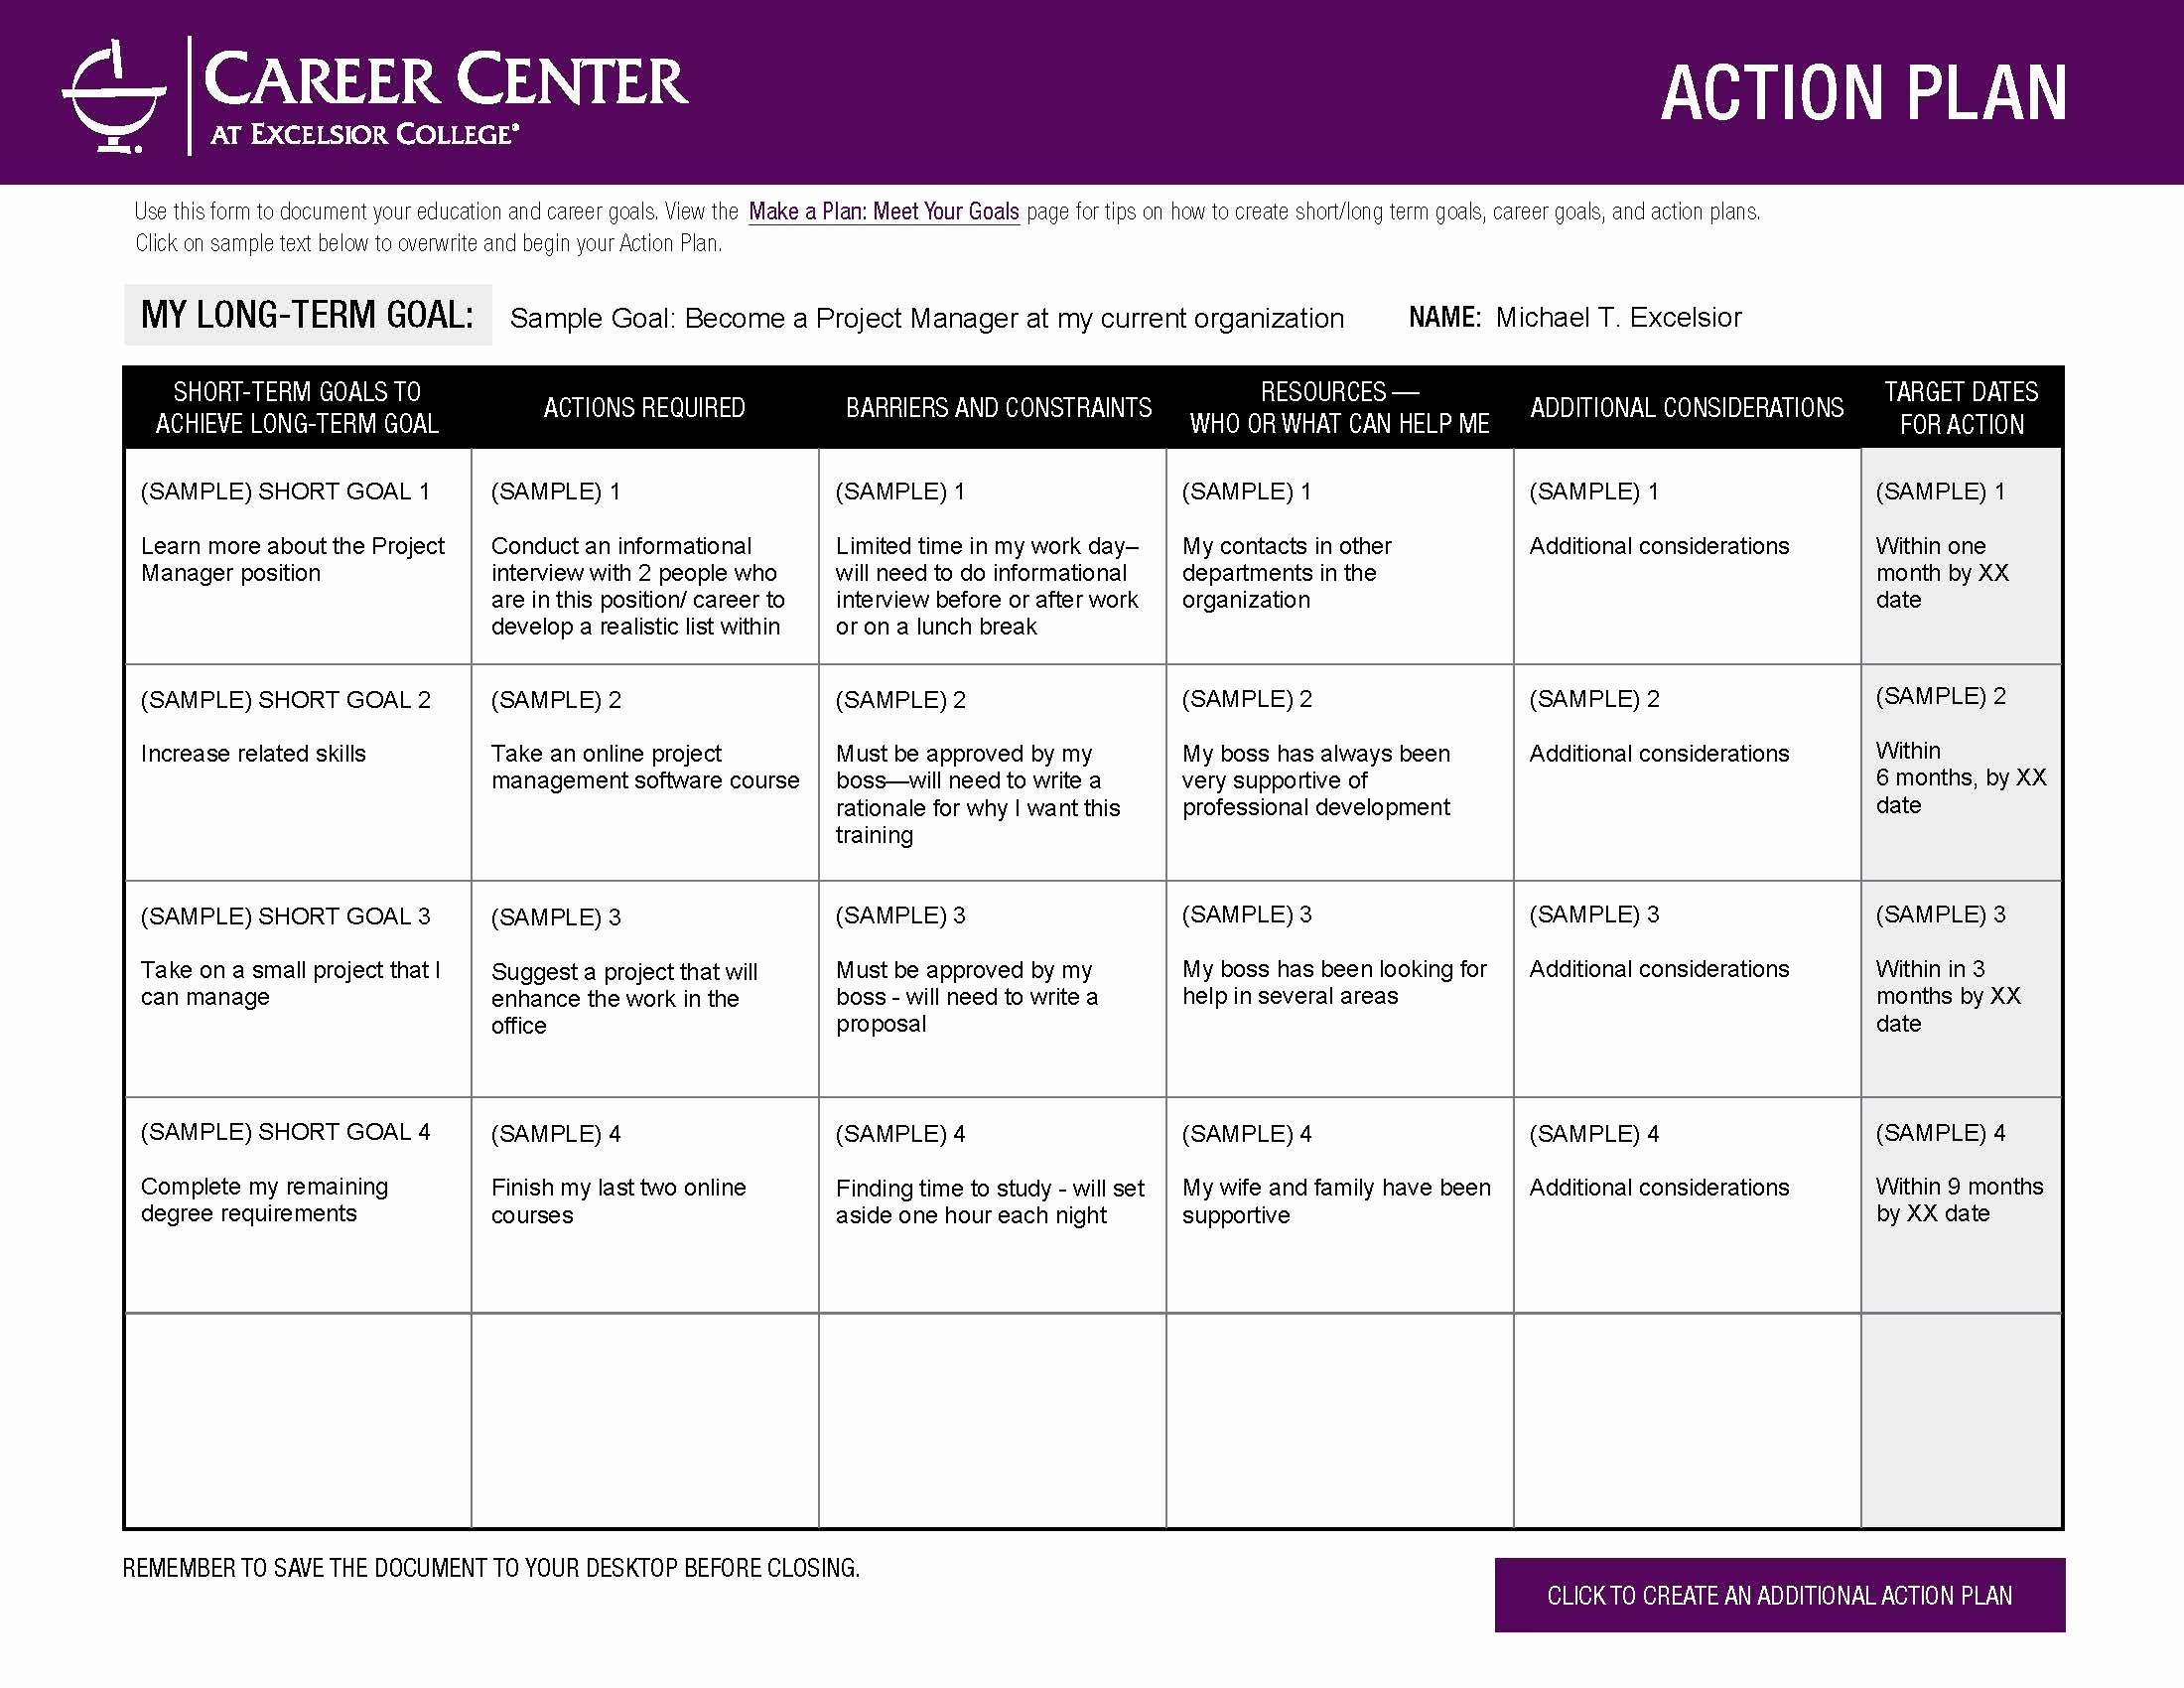 Career Action Plan Template Inspirational Excelsior College Make A Plan – Meet Your Goals